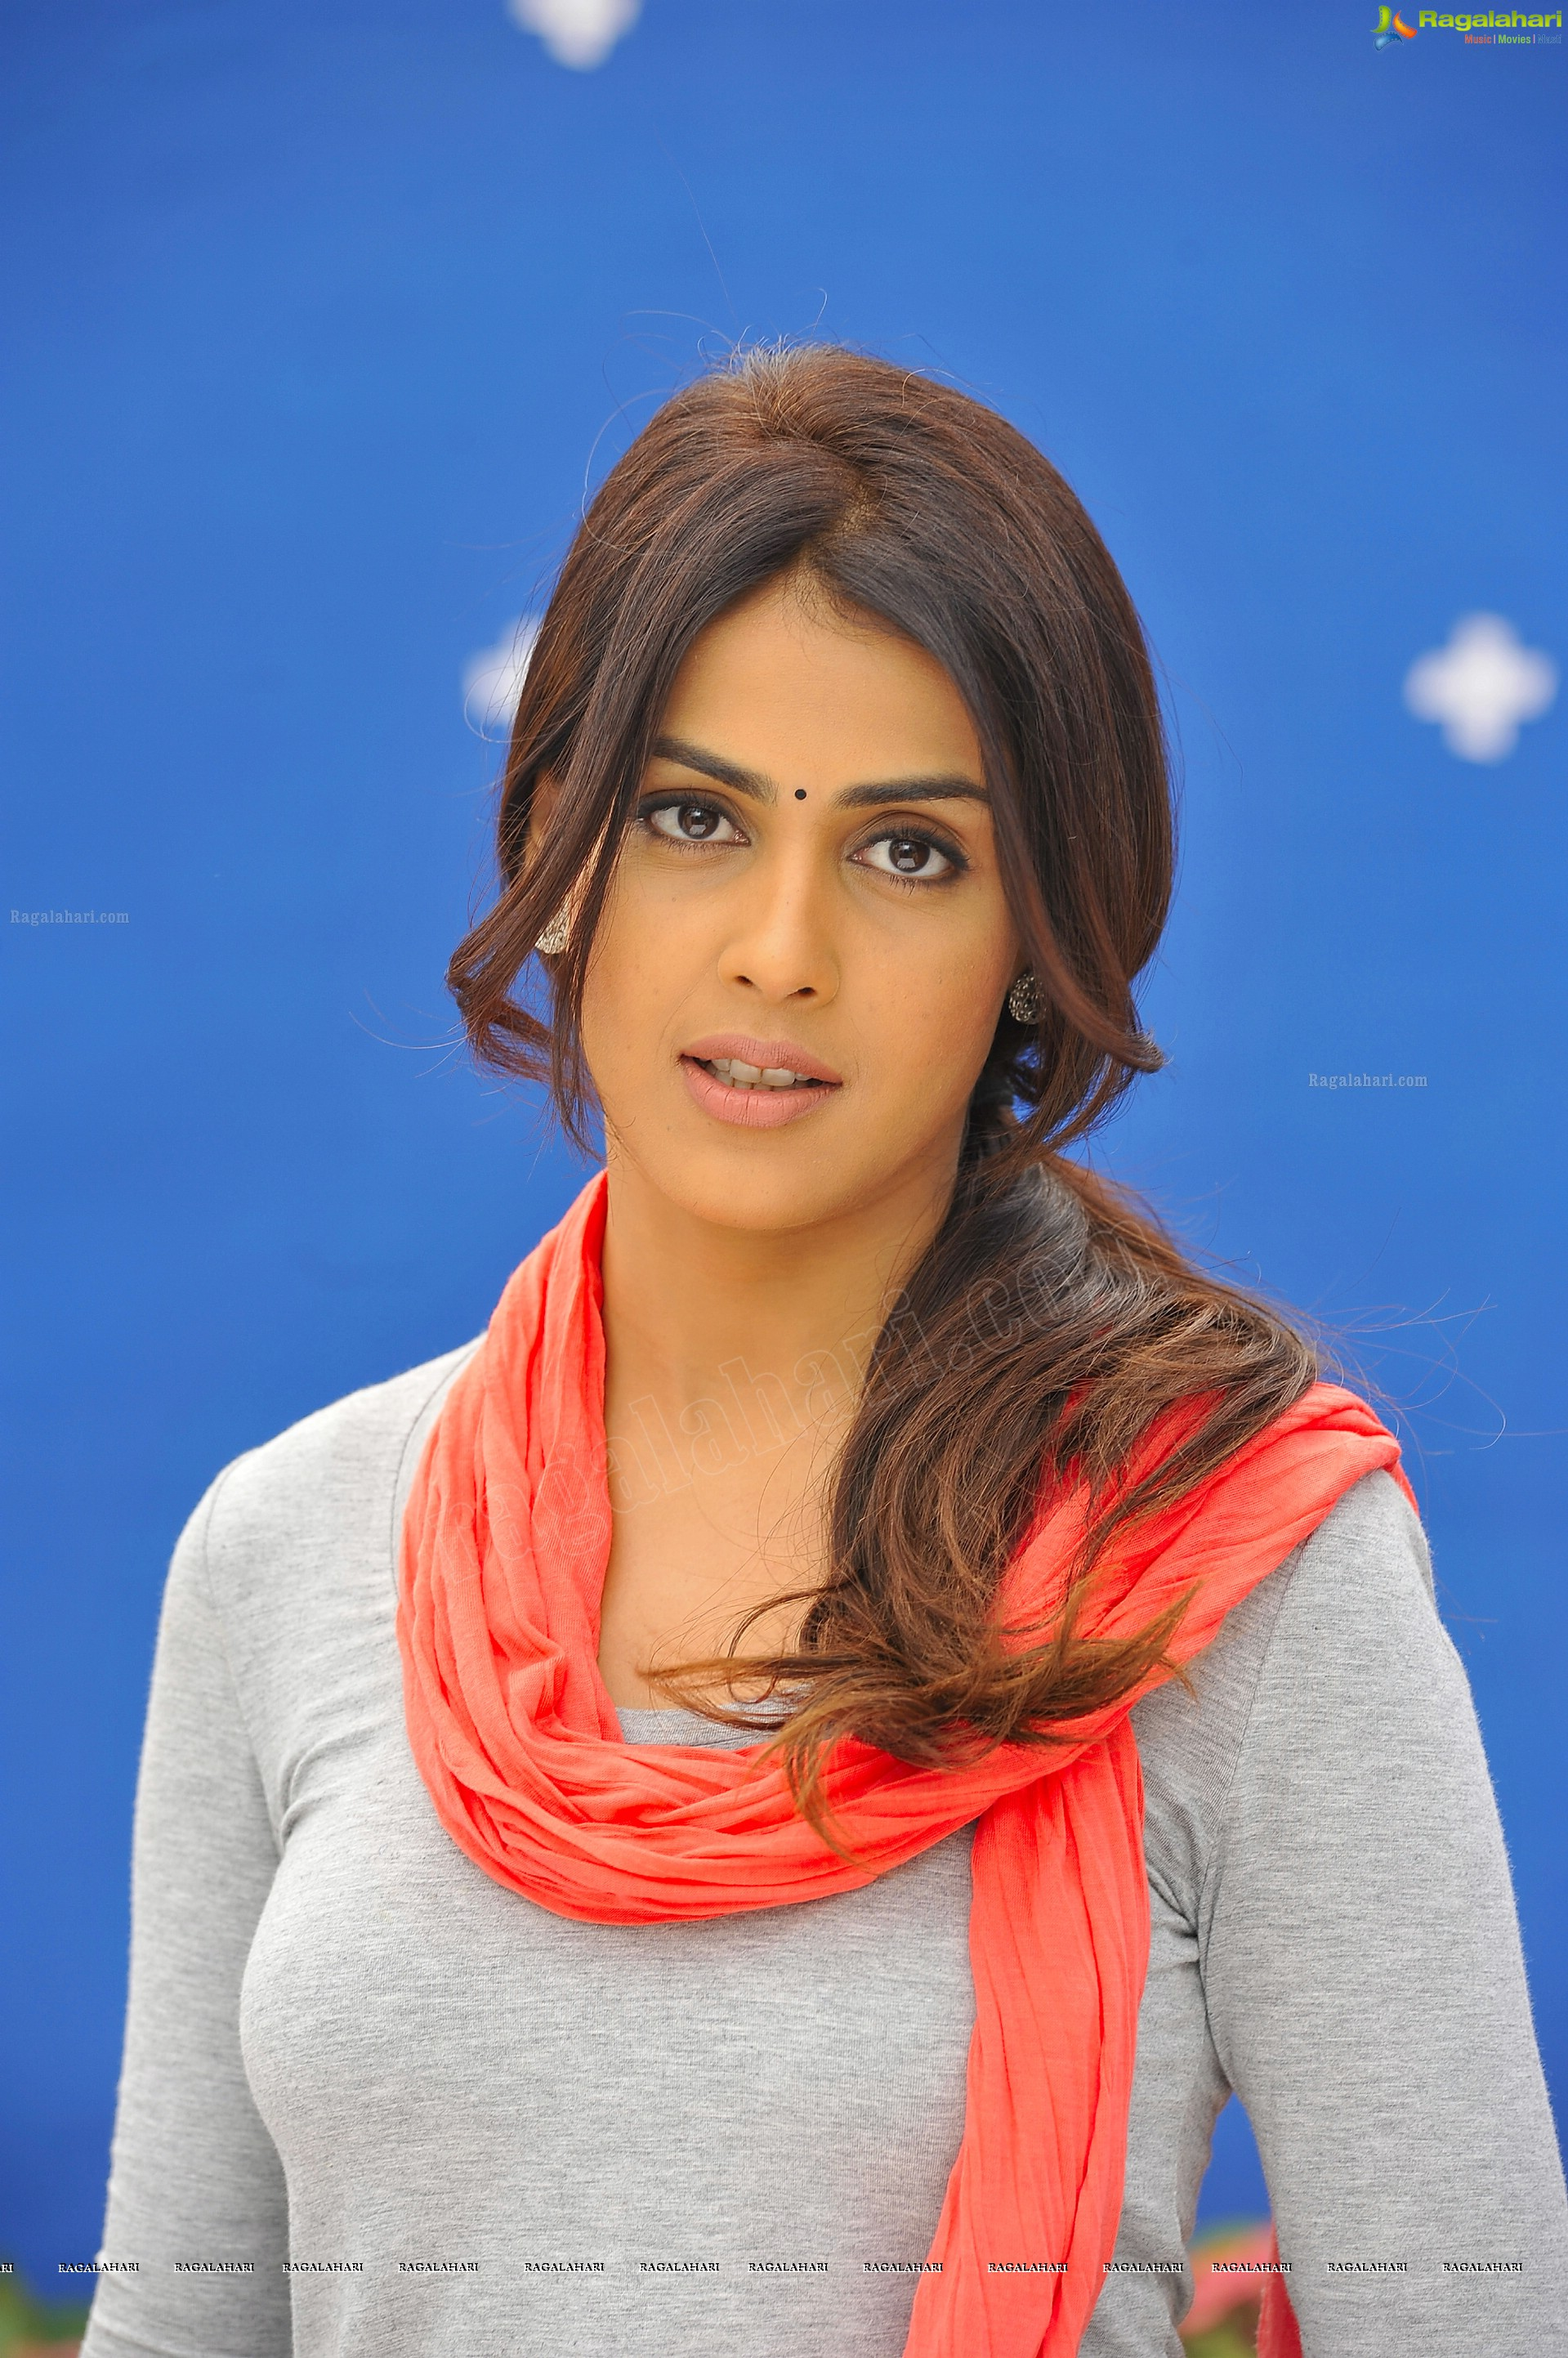 genelia (hd) image 58 | tollywood actress hot images,telugu movie